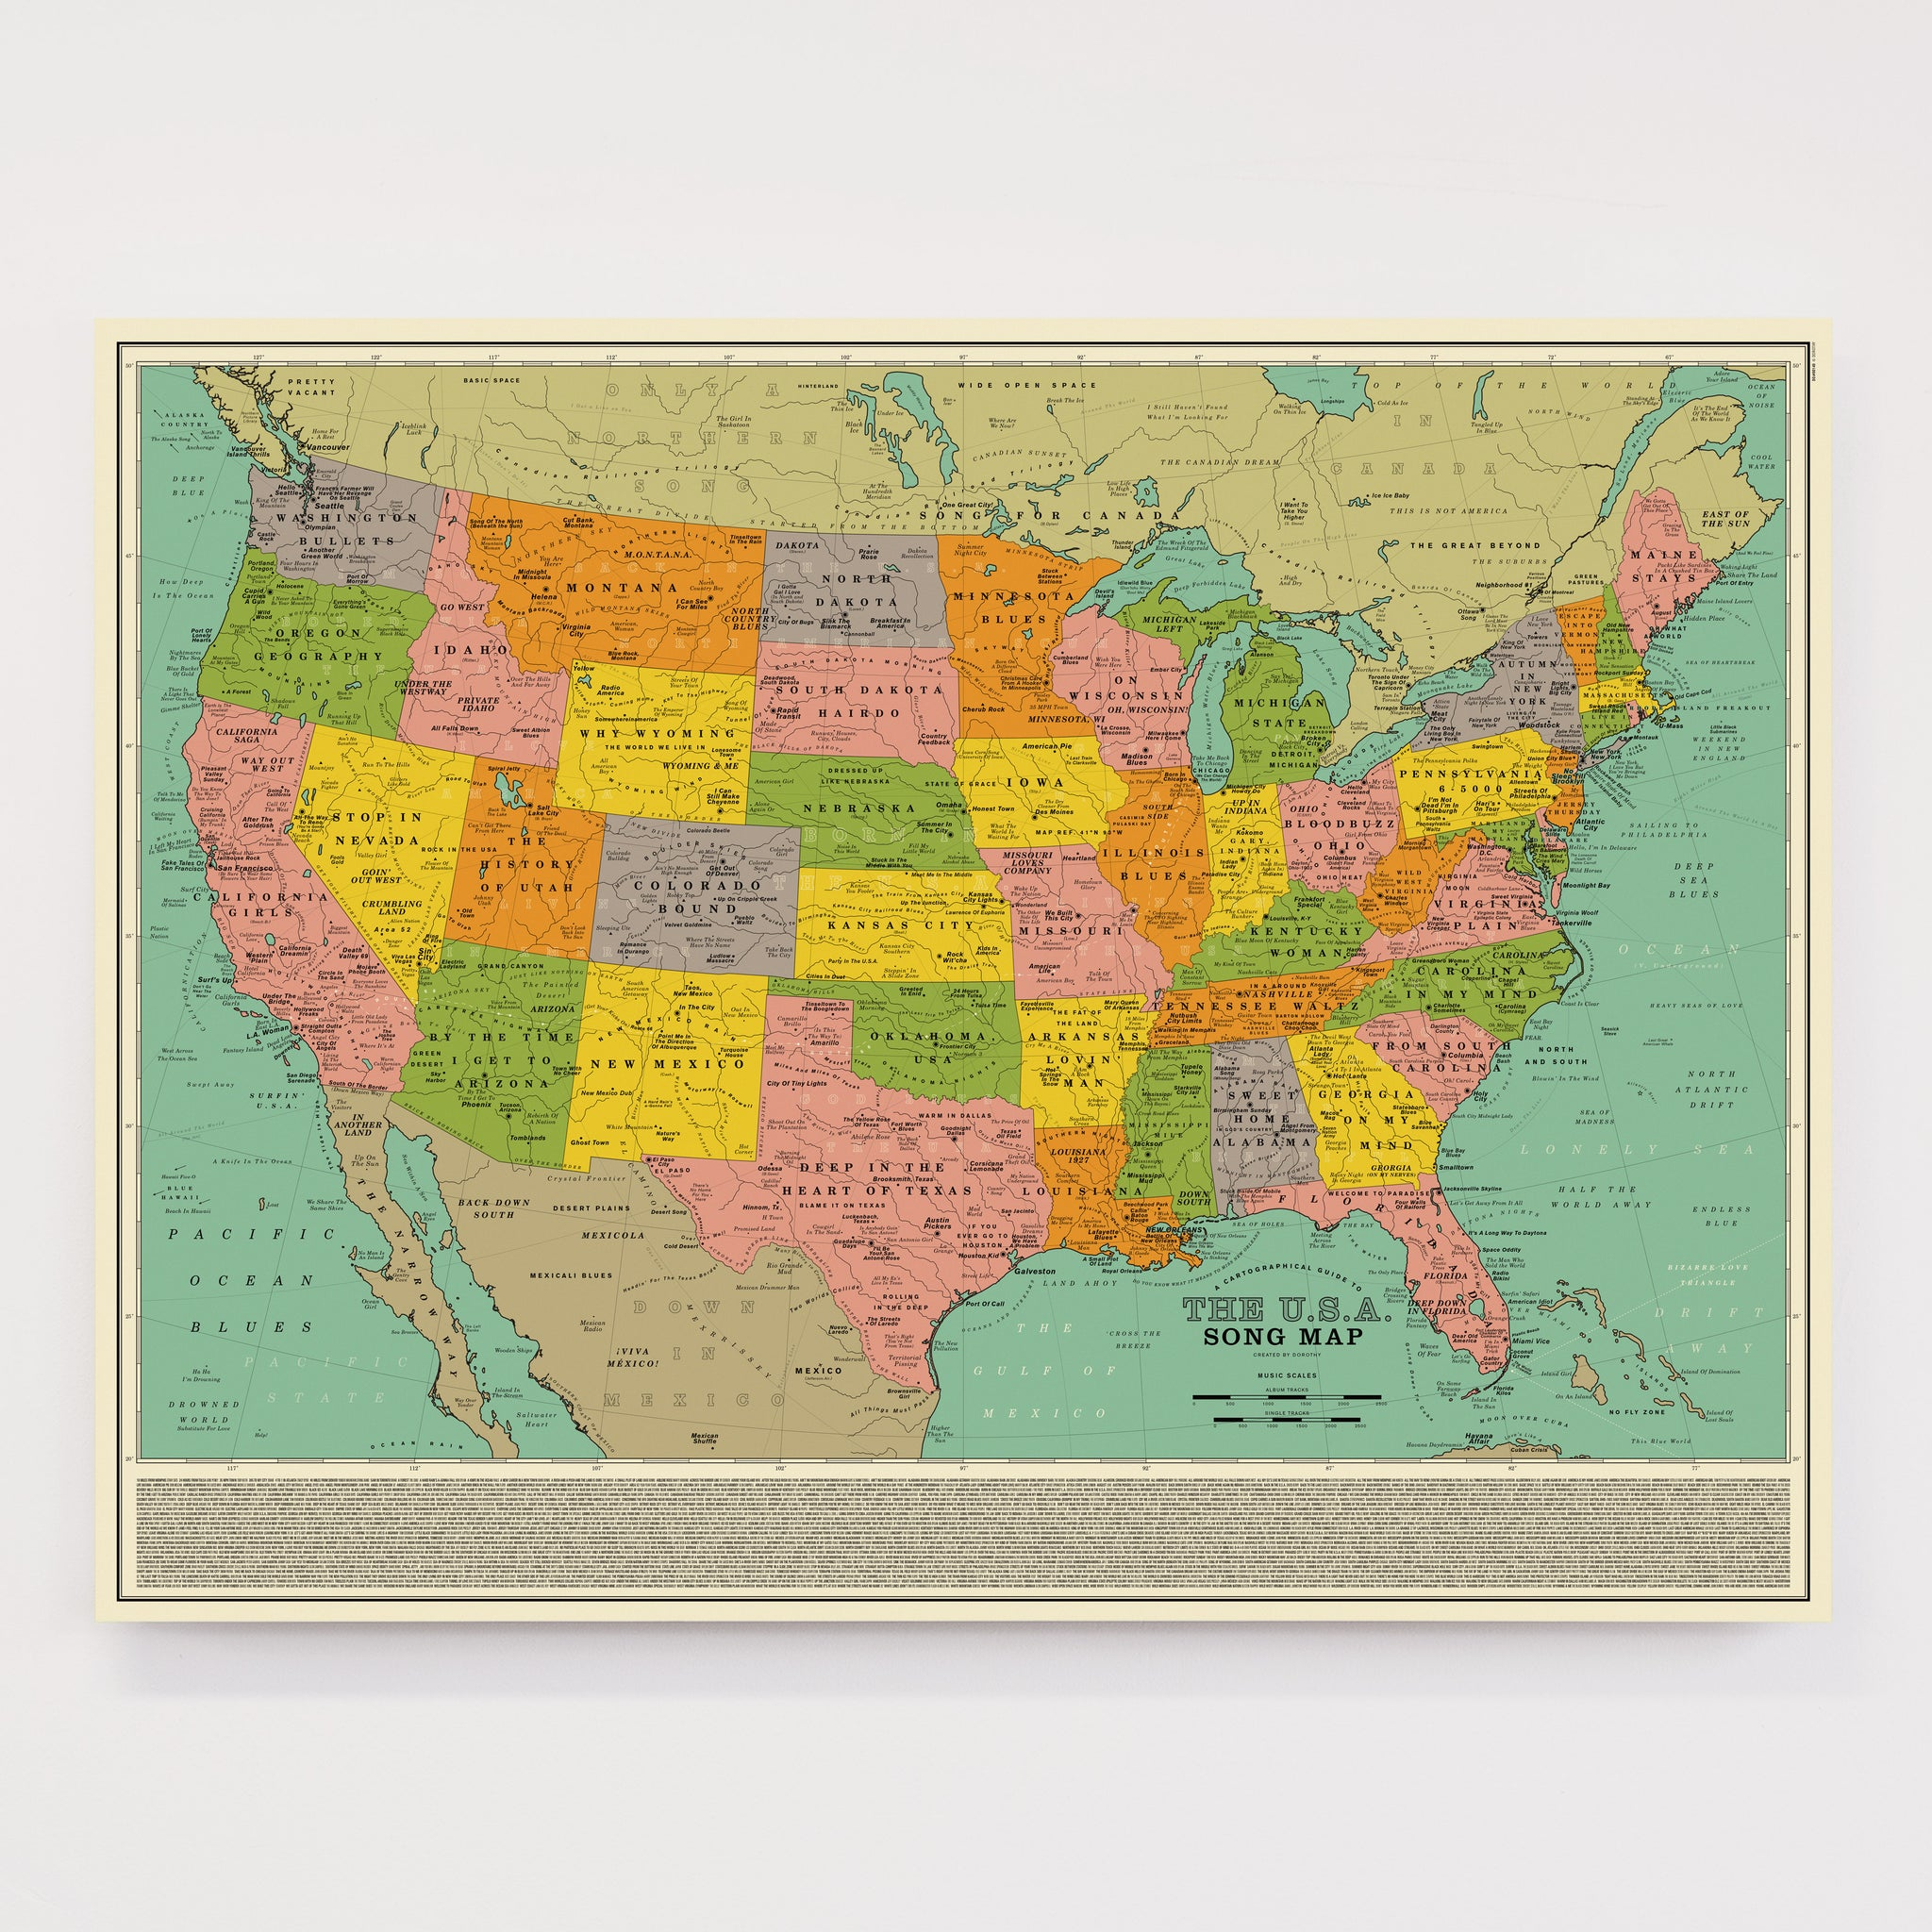 U.S.A. Song Map - Open Edition on map of spain, map of china, map of asia, map of europe, map of africa, map of south america, map of japan, map of italy, map of england, map of france, united states maps usa, map od the sua, map of germany,